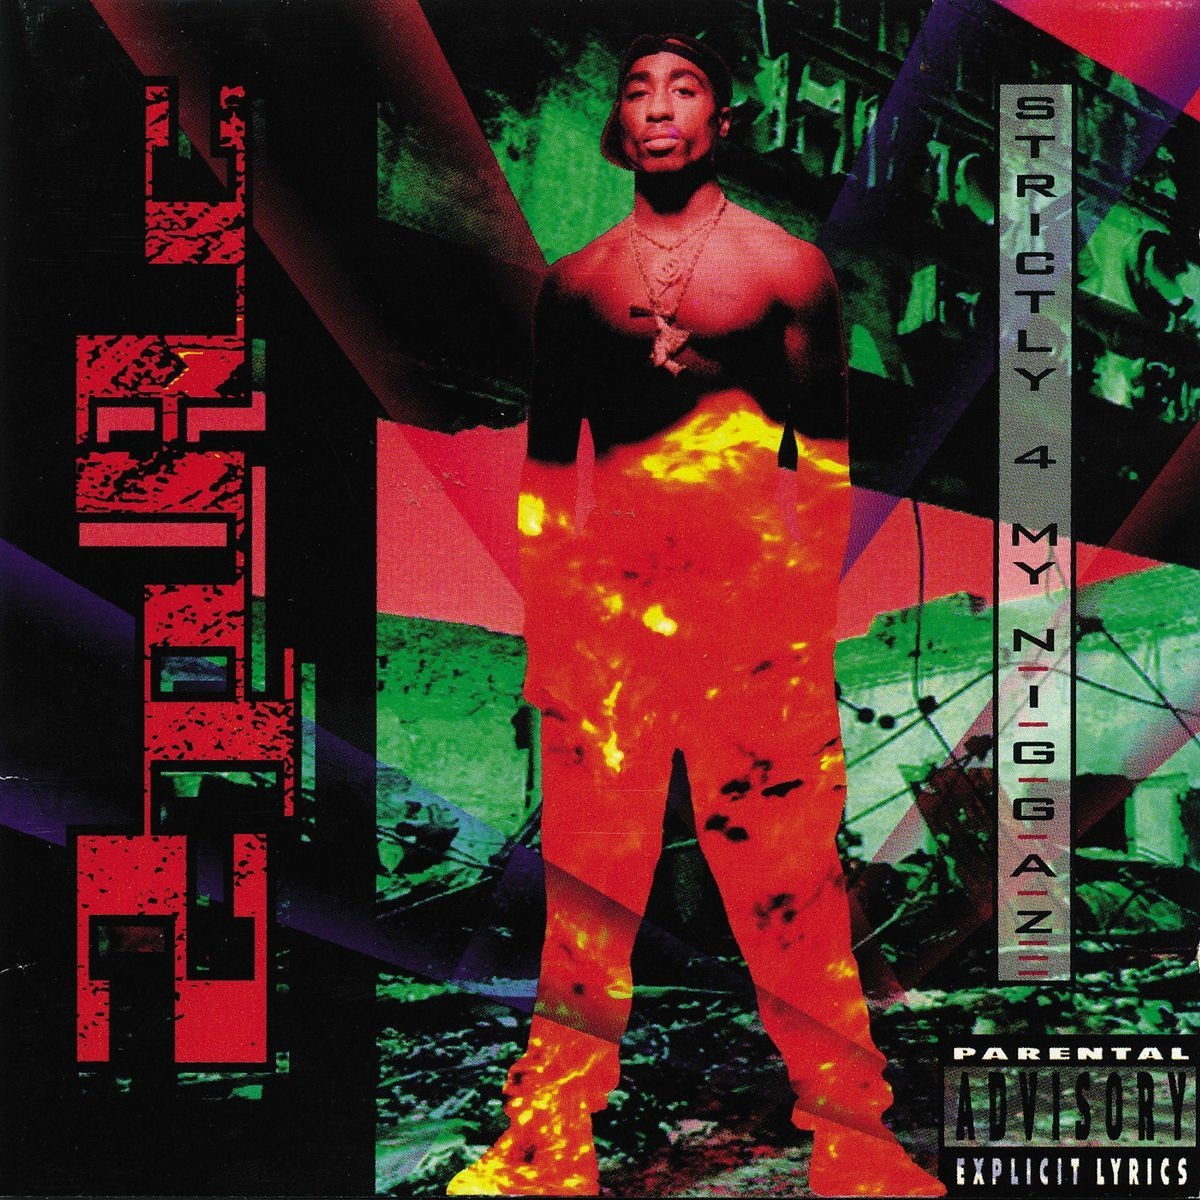 CD Shop - 2 PAC STRICTLY 4 MY N.I.G.G.A.Z.